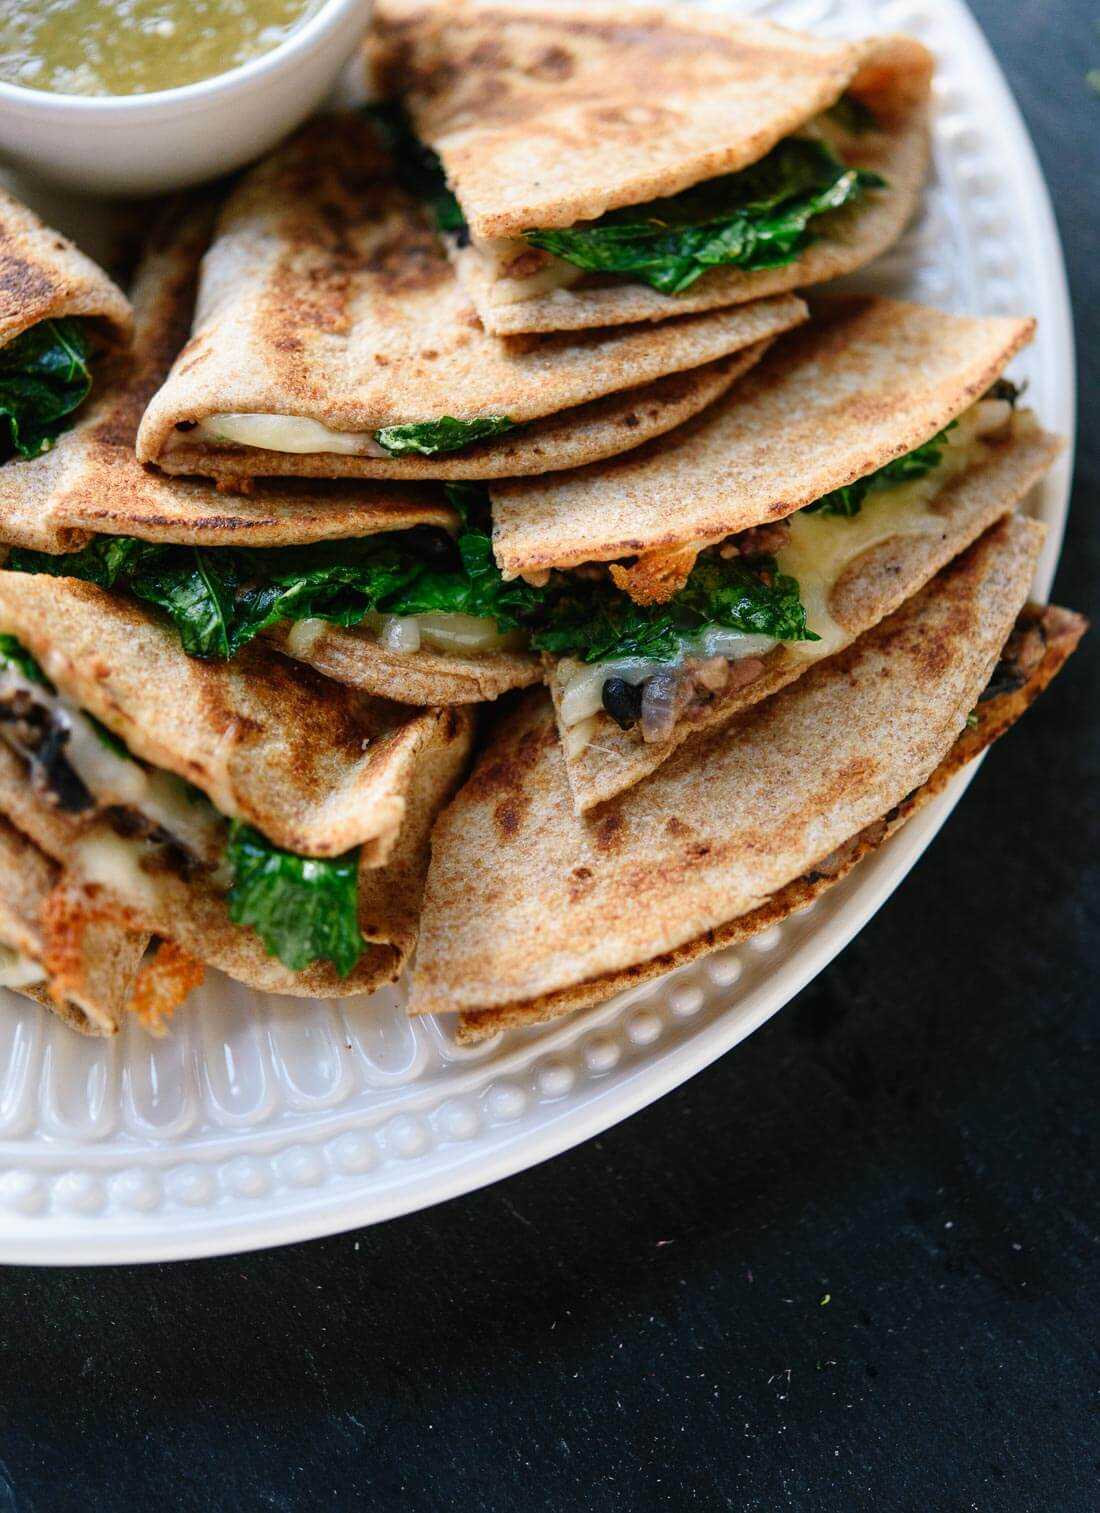 Hearty and fresh broccoli rabe quesadillas - cookieandkate.com